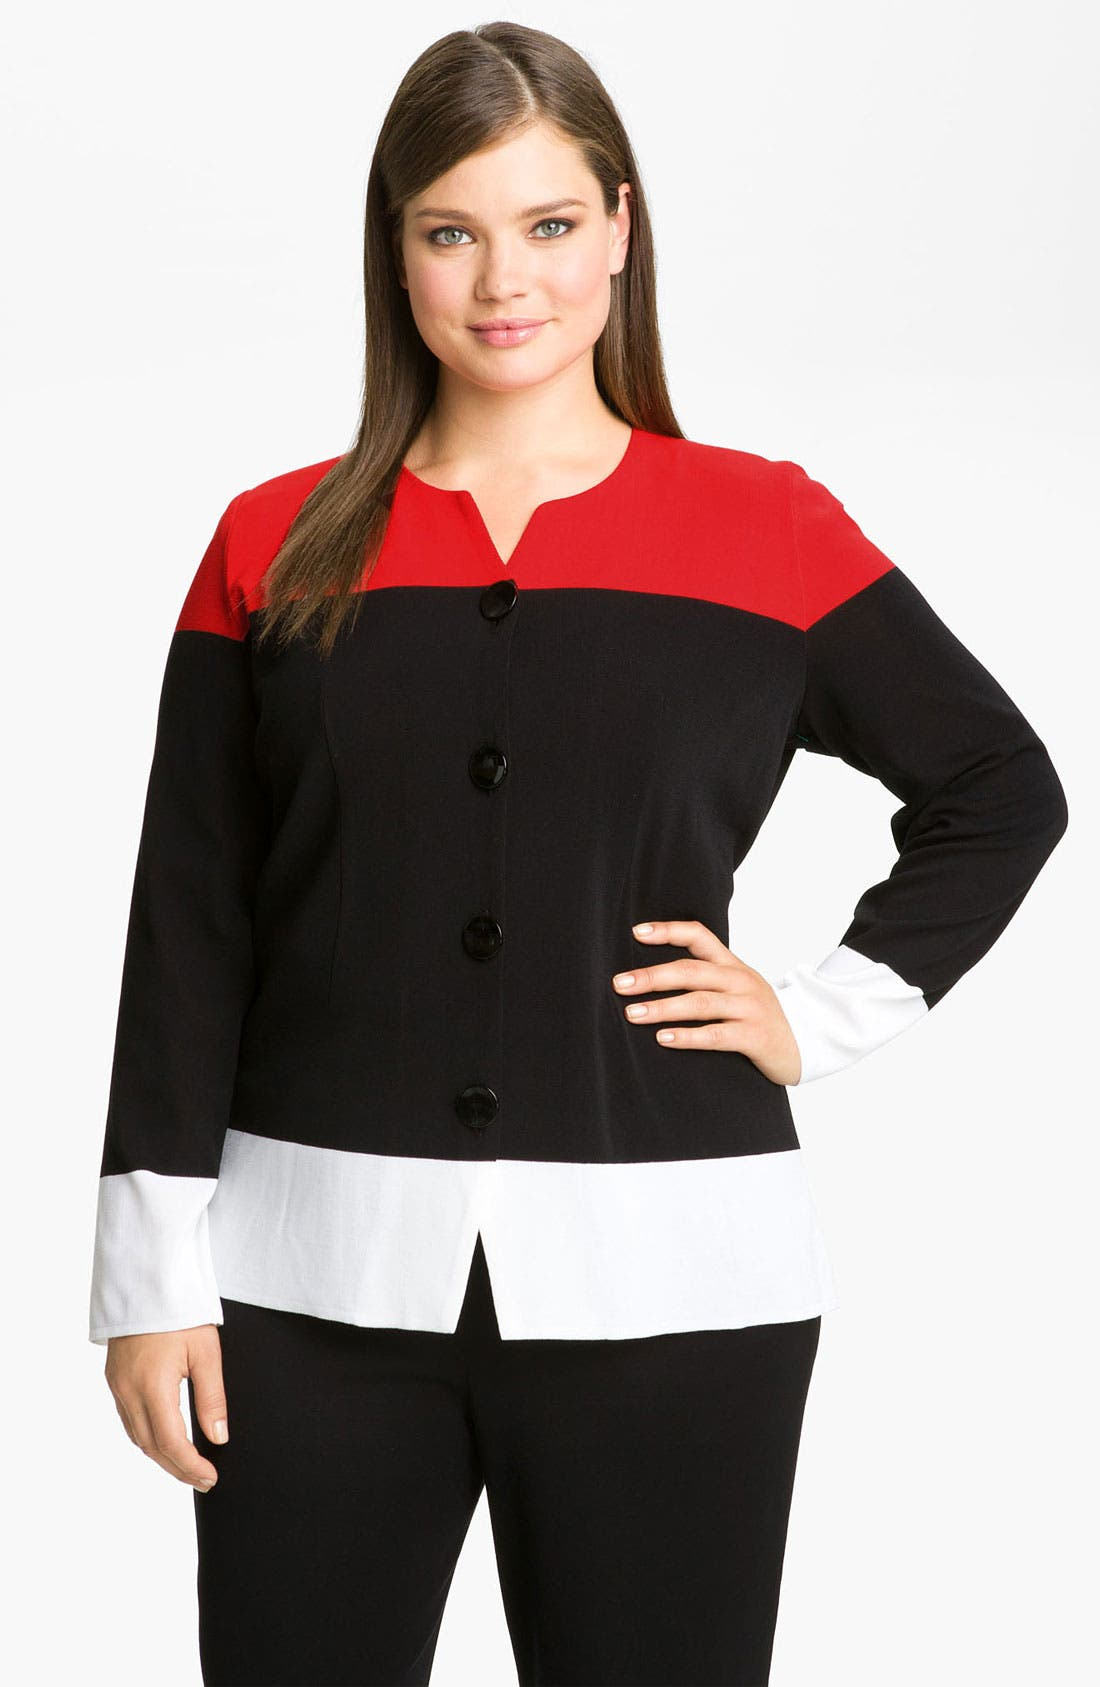 Alternate Image 1 Selected - Exclusively Misook Colorblock Knit Jacket (Plus)